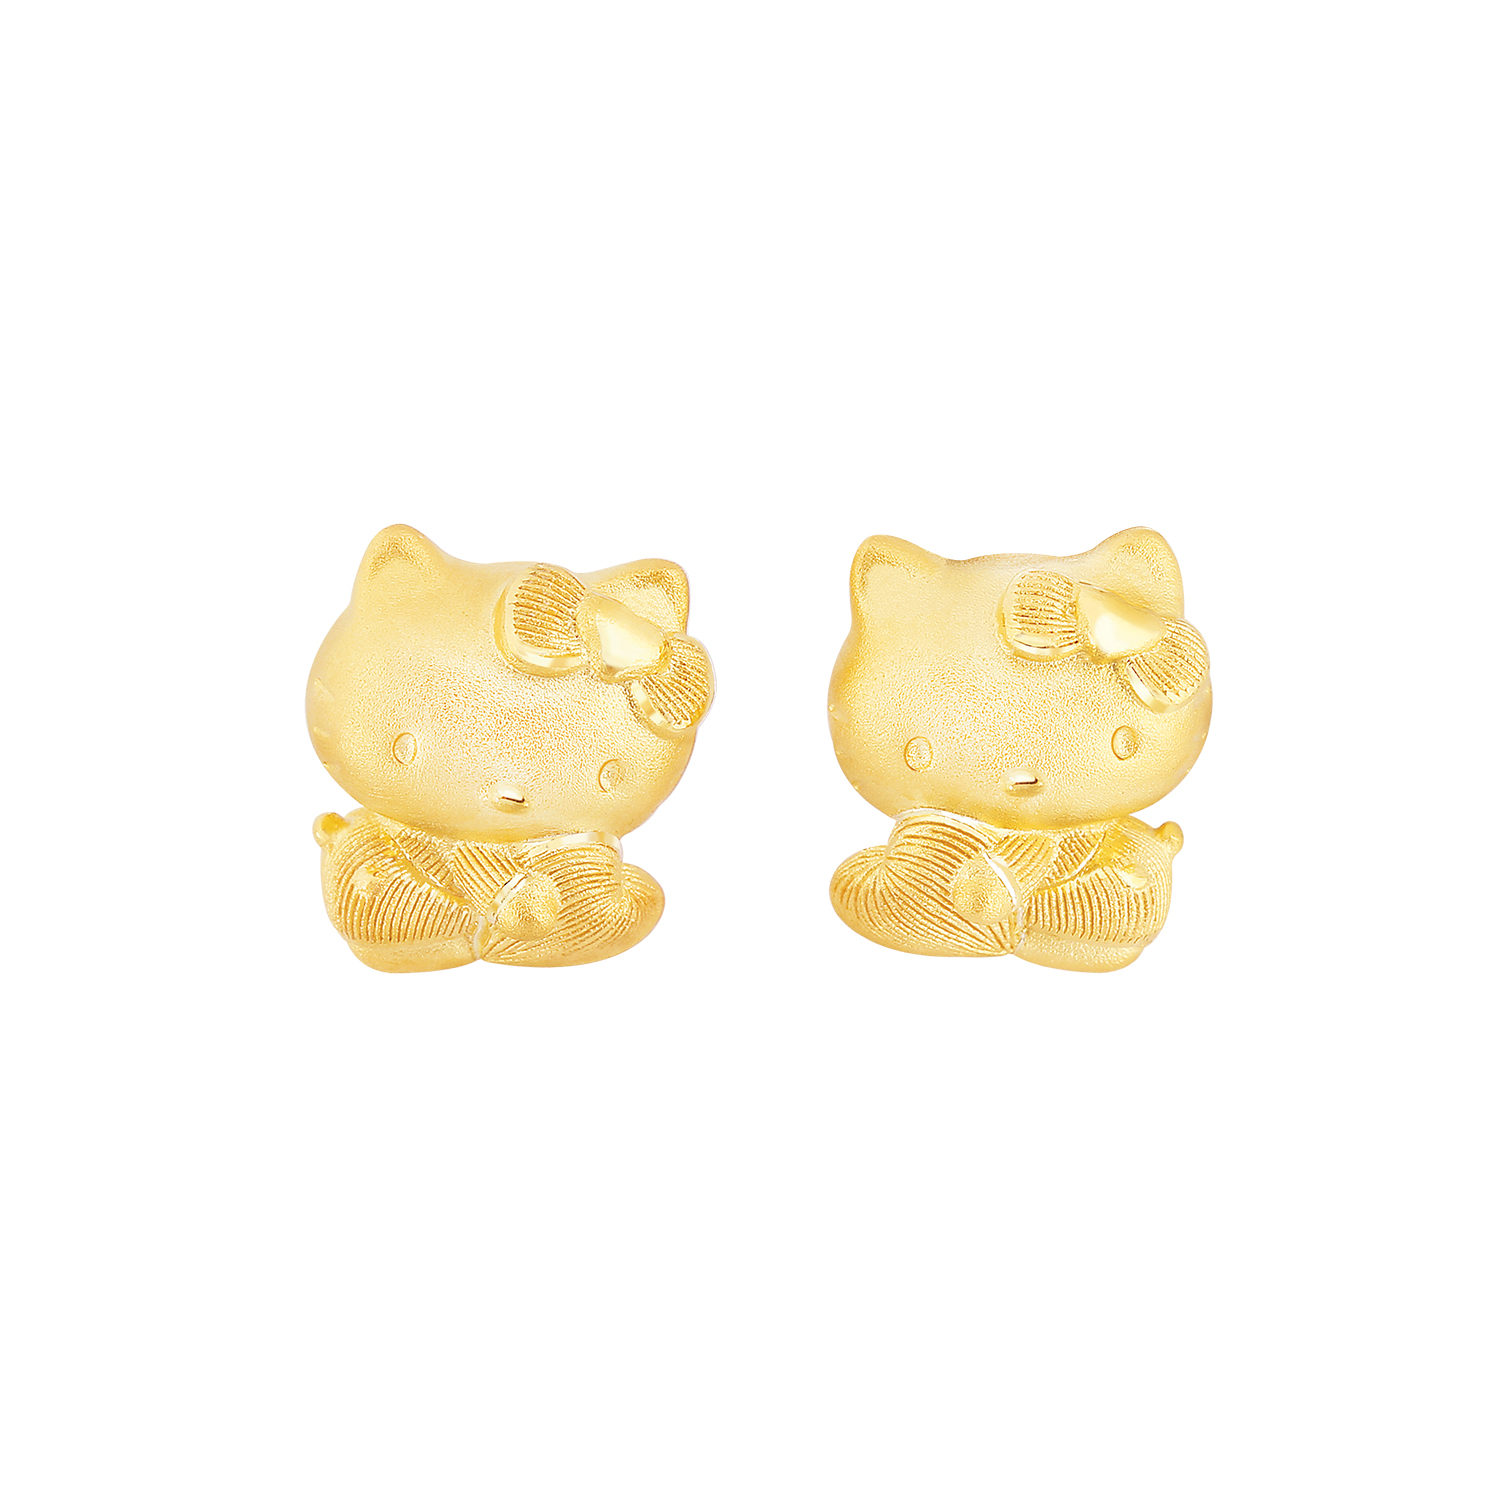 Hello Kitty Earring Prima Gold พร ม าโกลด